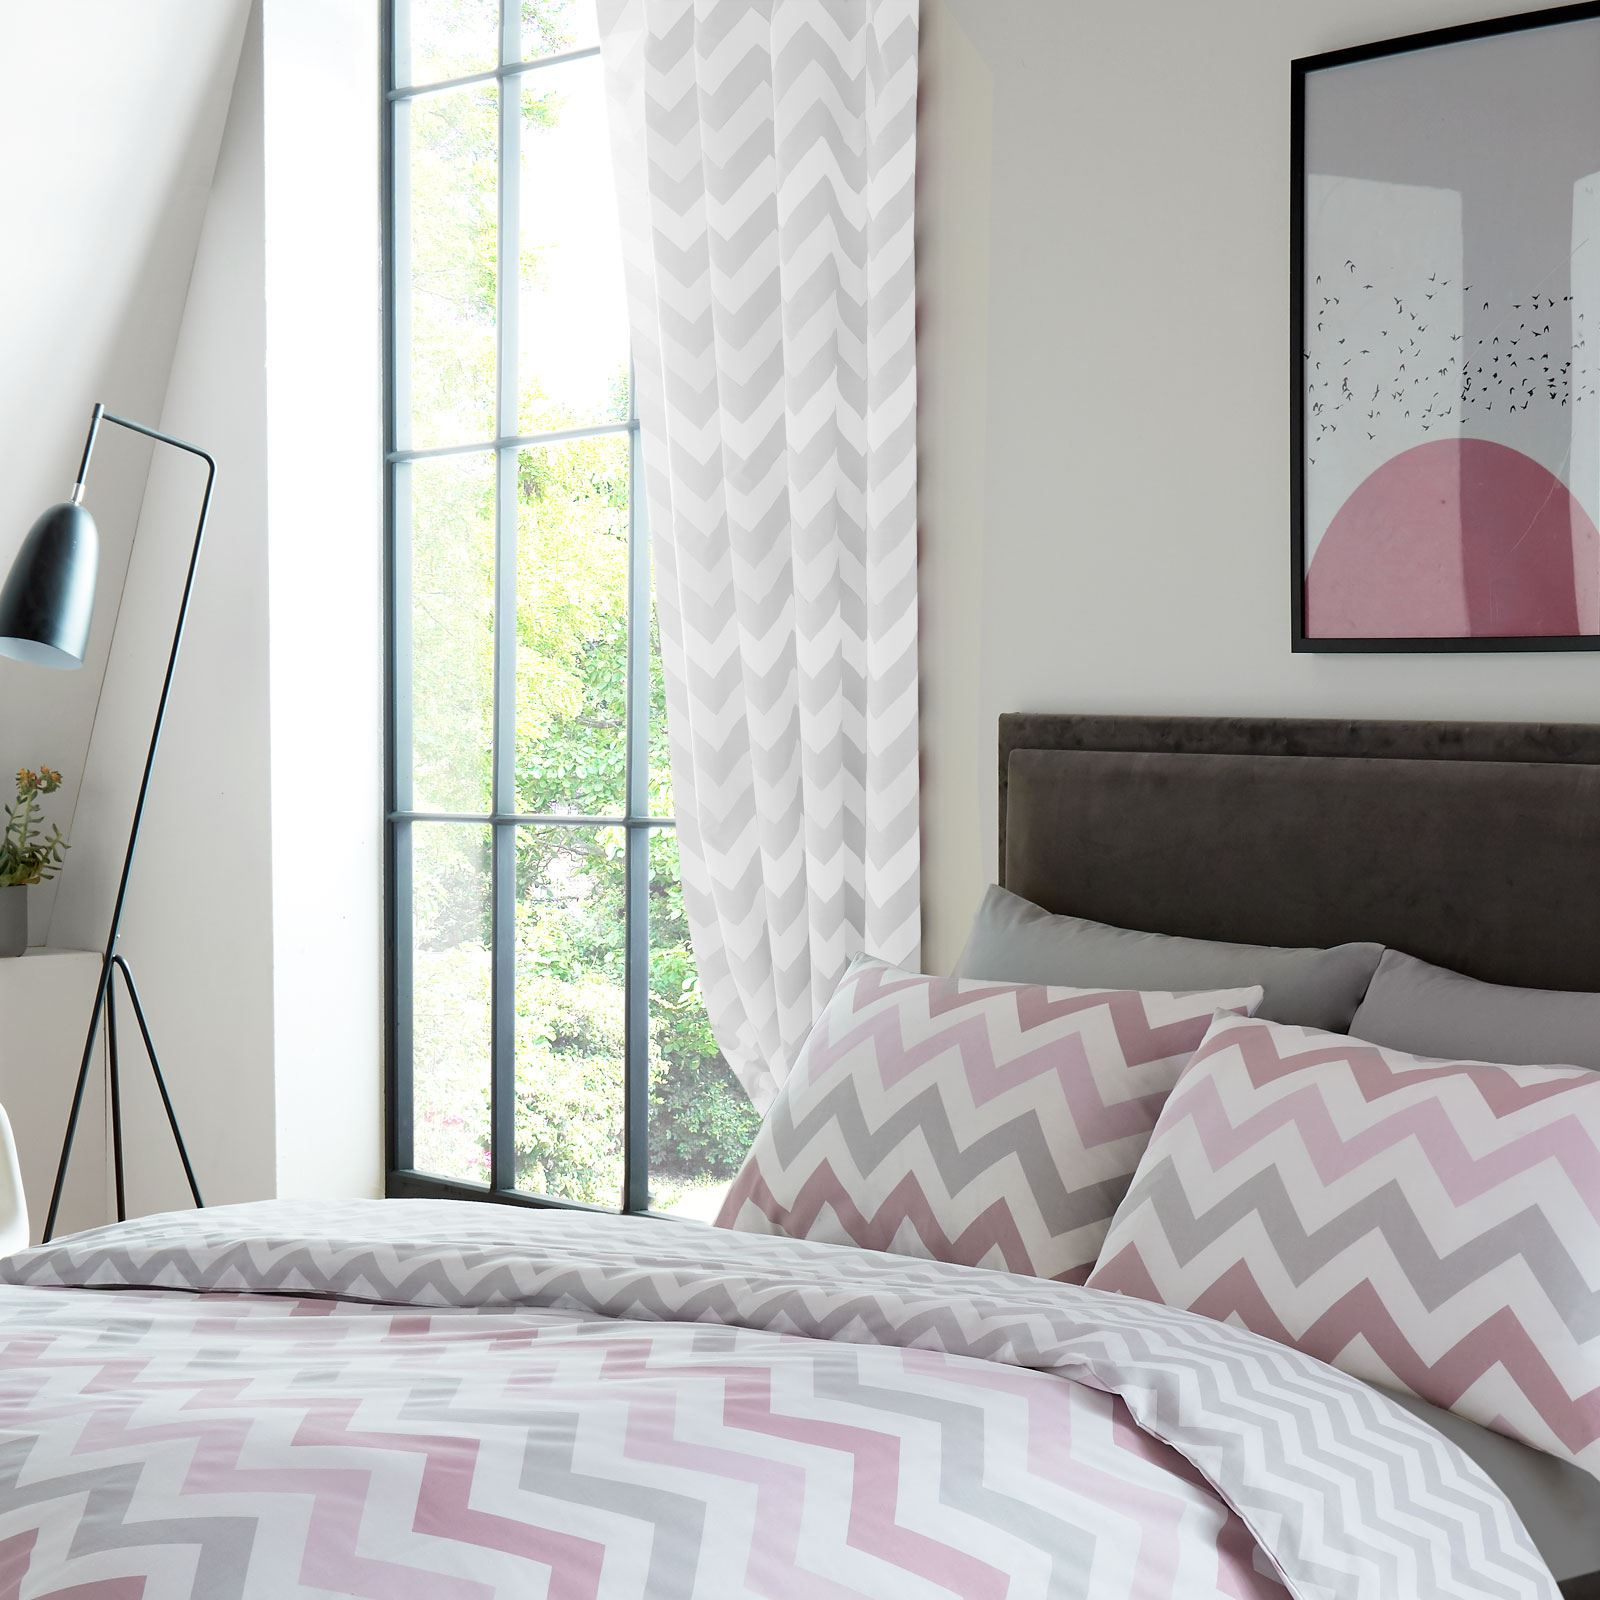 Details about METRO GEOMETRIC CHEVRON GREY WHITE LINED CURTAINS BEDROOM 54\